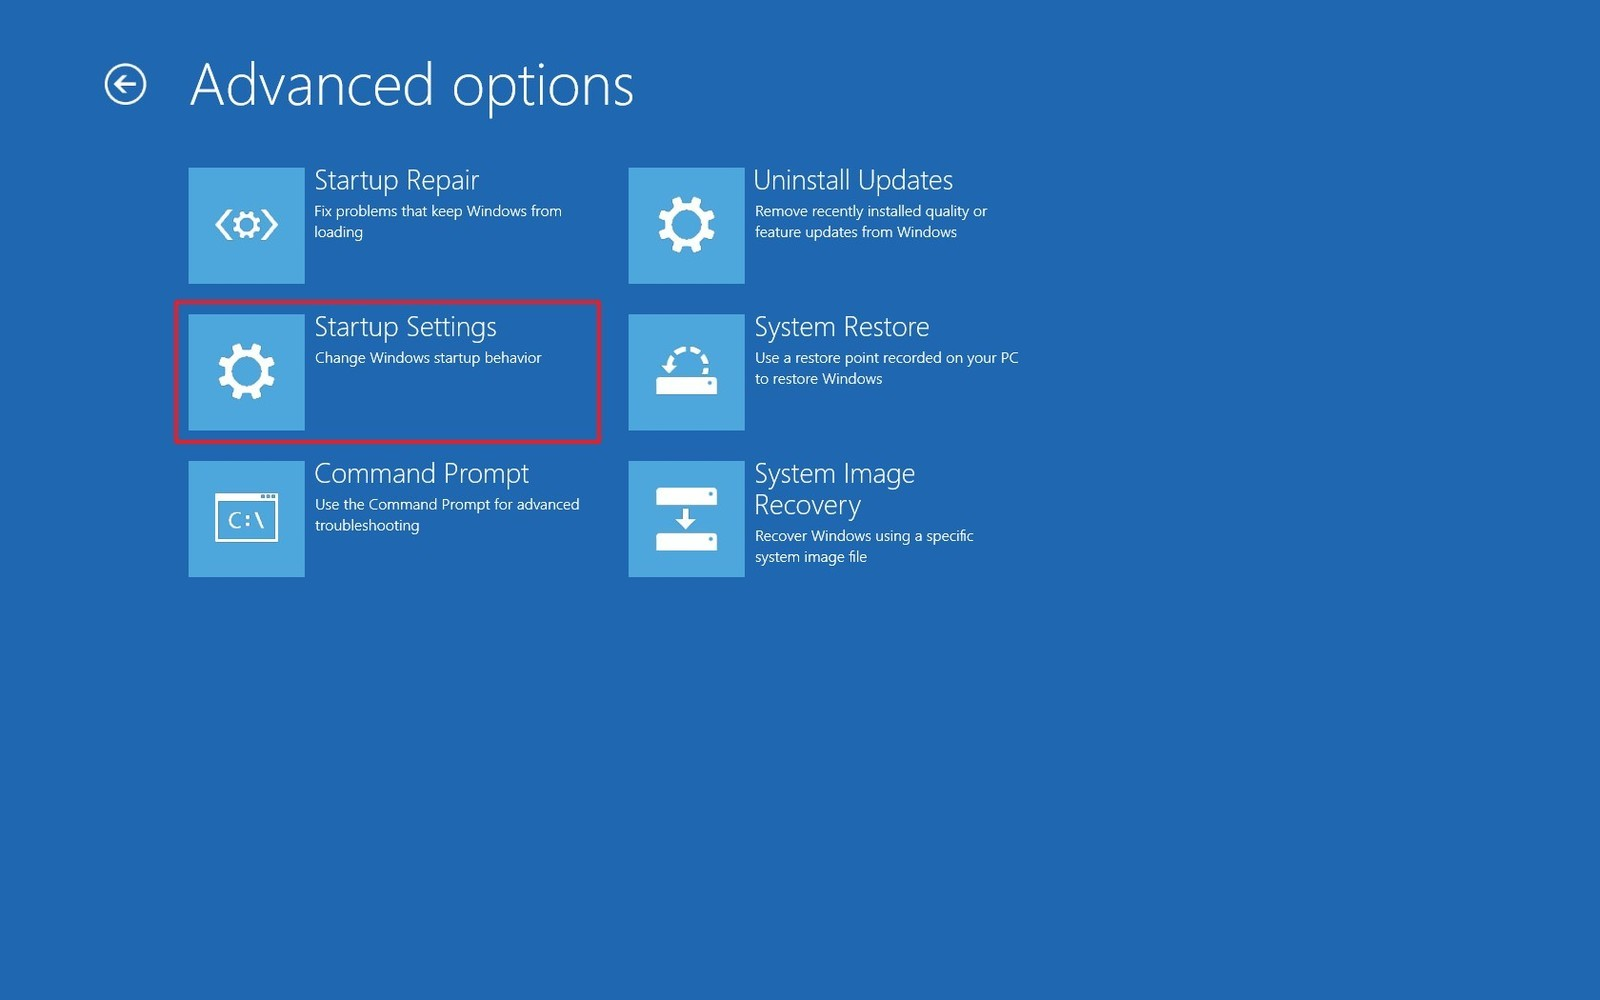 startup-settings-avanced-options-windows10.jpg